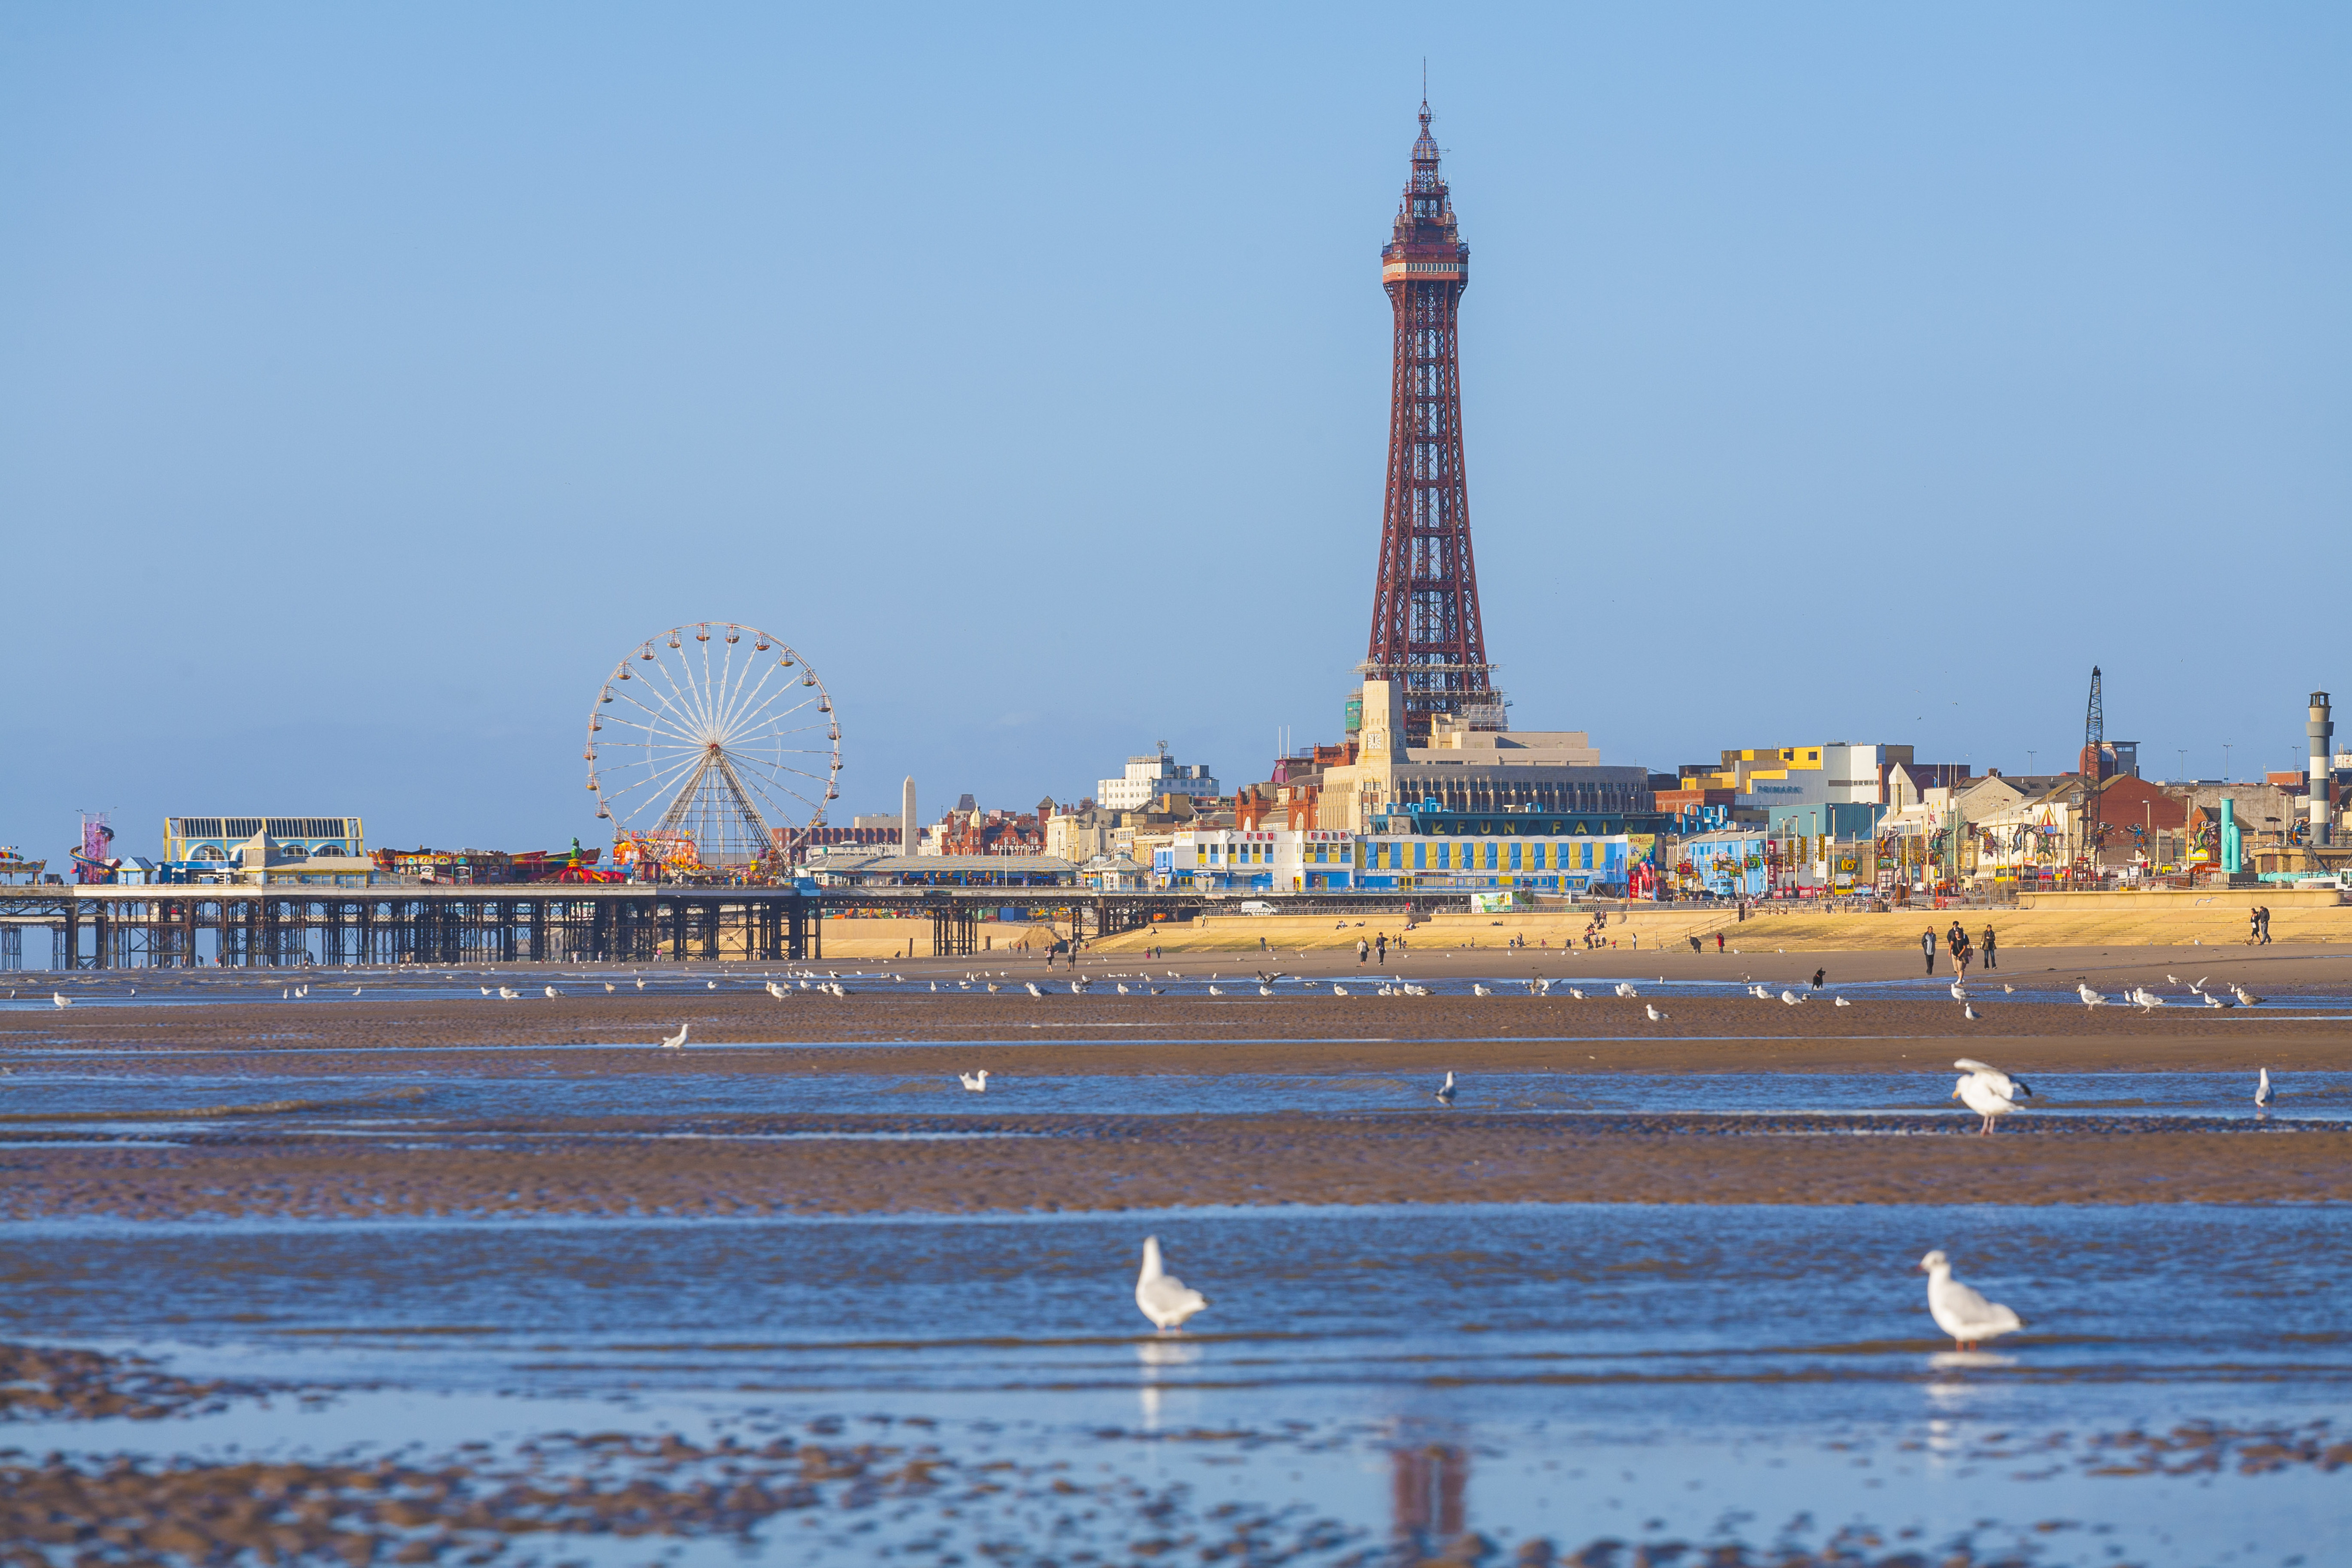 BLACKPOOL, LANCASHIRE, NORTH WEST OF ENGLAND, UNITED KINGDOM - 2009/09/09: Blackpool Beach at Low Tide with Blackpool Tower in the background. (Photo by Pawel Libera/LightRocket via Getty Images)